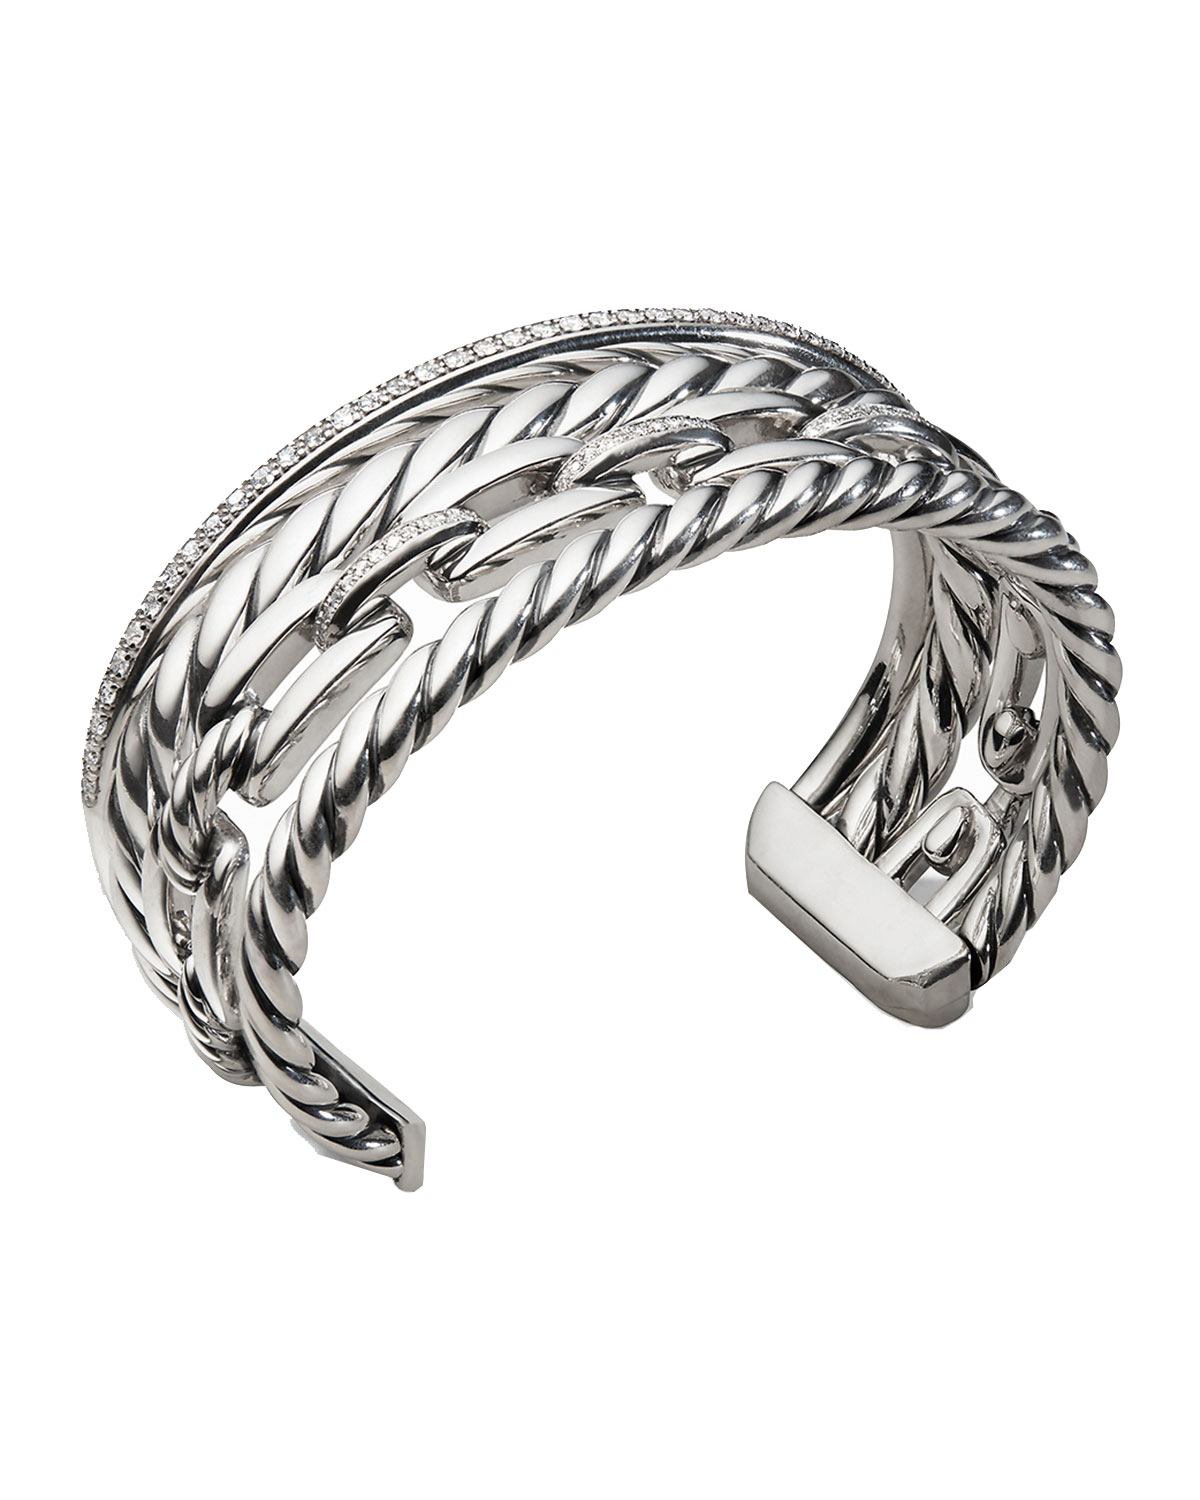 230f16c441d7c David YurmanWellesley Sterling Silver Four-Row Cuff Bracelet with Diamonds